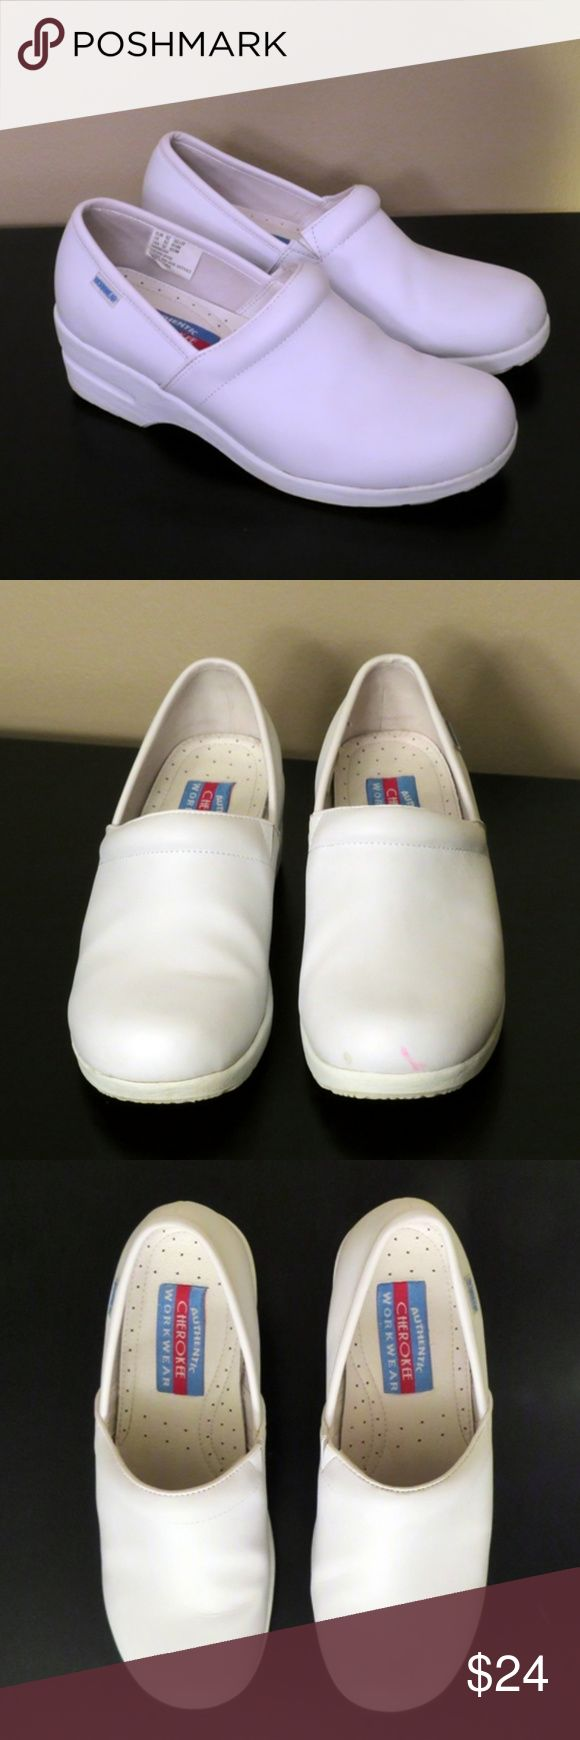 CHEROKEE Workwear Harmony White Leather Clogs 8.5 Worn just a couple of times as a dental hygienist, these leather shoes are like new with one small flaw. Small pink stain on very end of toe of the left shoe. Not really noticeable when you're wearing them and it can be covered by a good white polish, but wanted you to see it in the photo. Soles show no physical wear on the bottom, just some darkening from street wear. (They are white, after all!) Inside of shoes show no wear. Very…